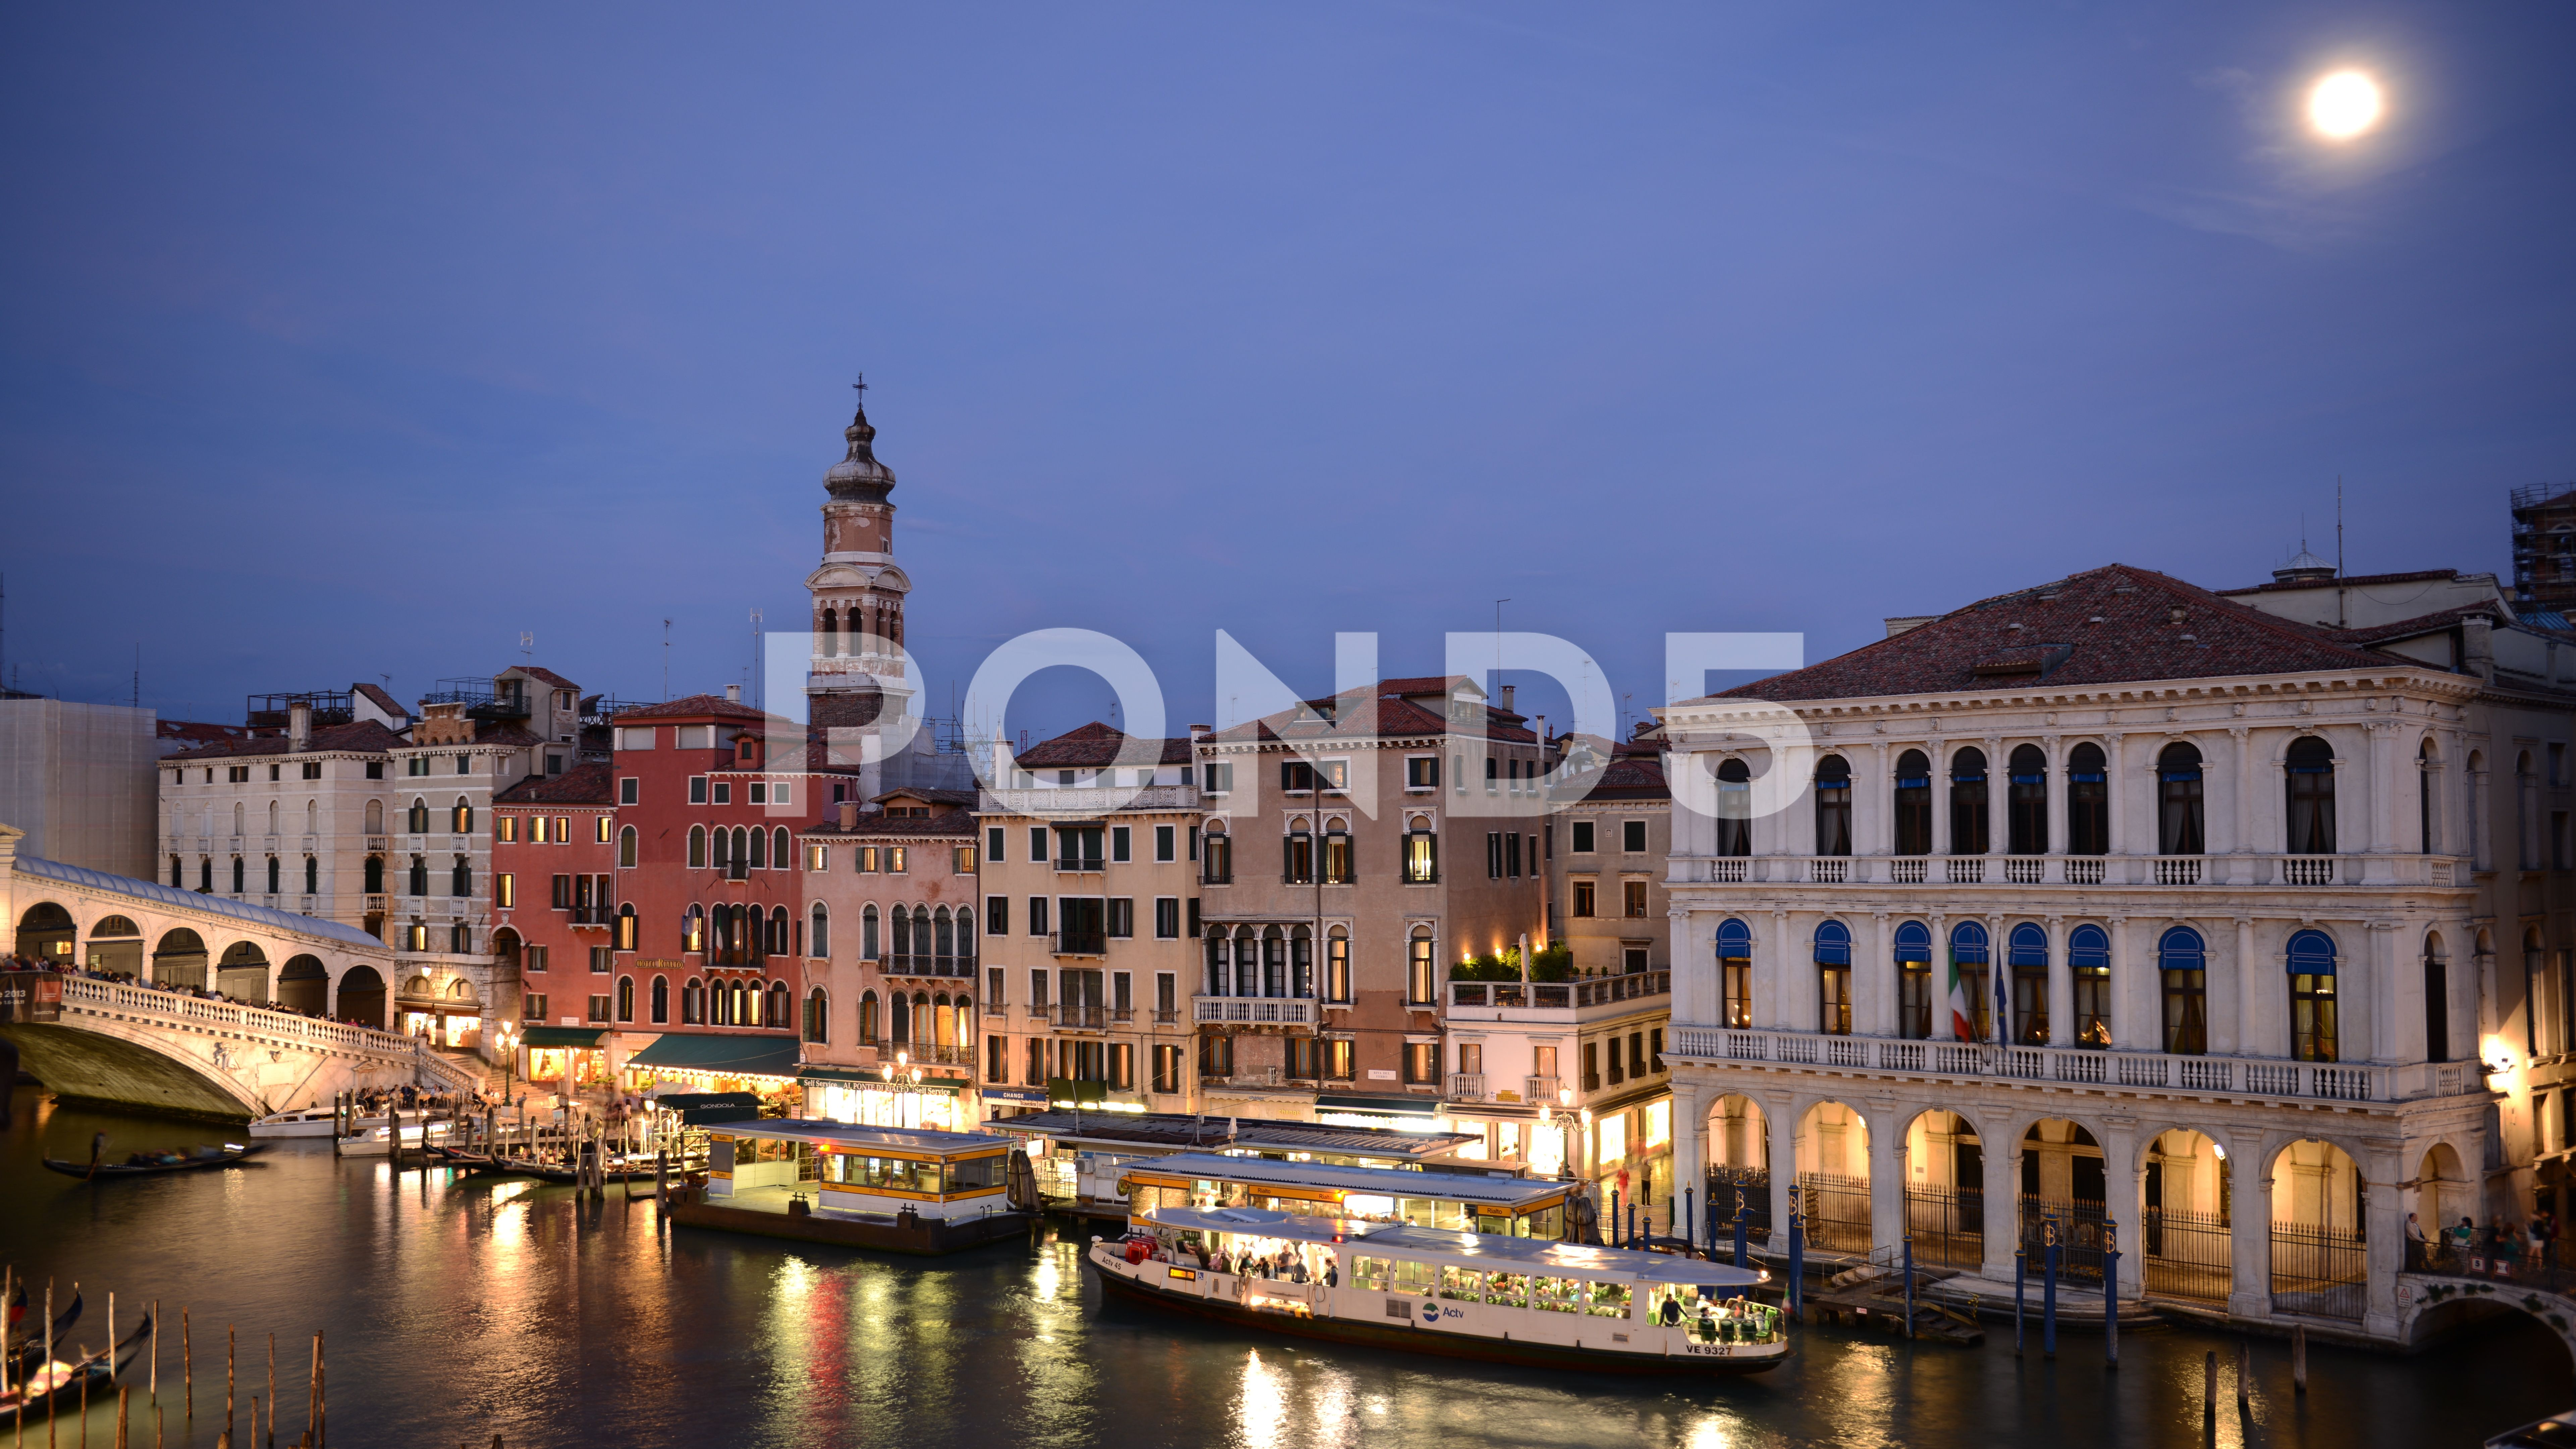 8K Time Lapse Aerial View Venice Crowd of People Sidewalk Day to Night Moonrise Stock Footage ViewVeniceCrowdTime